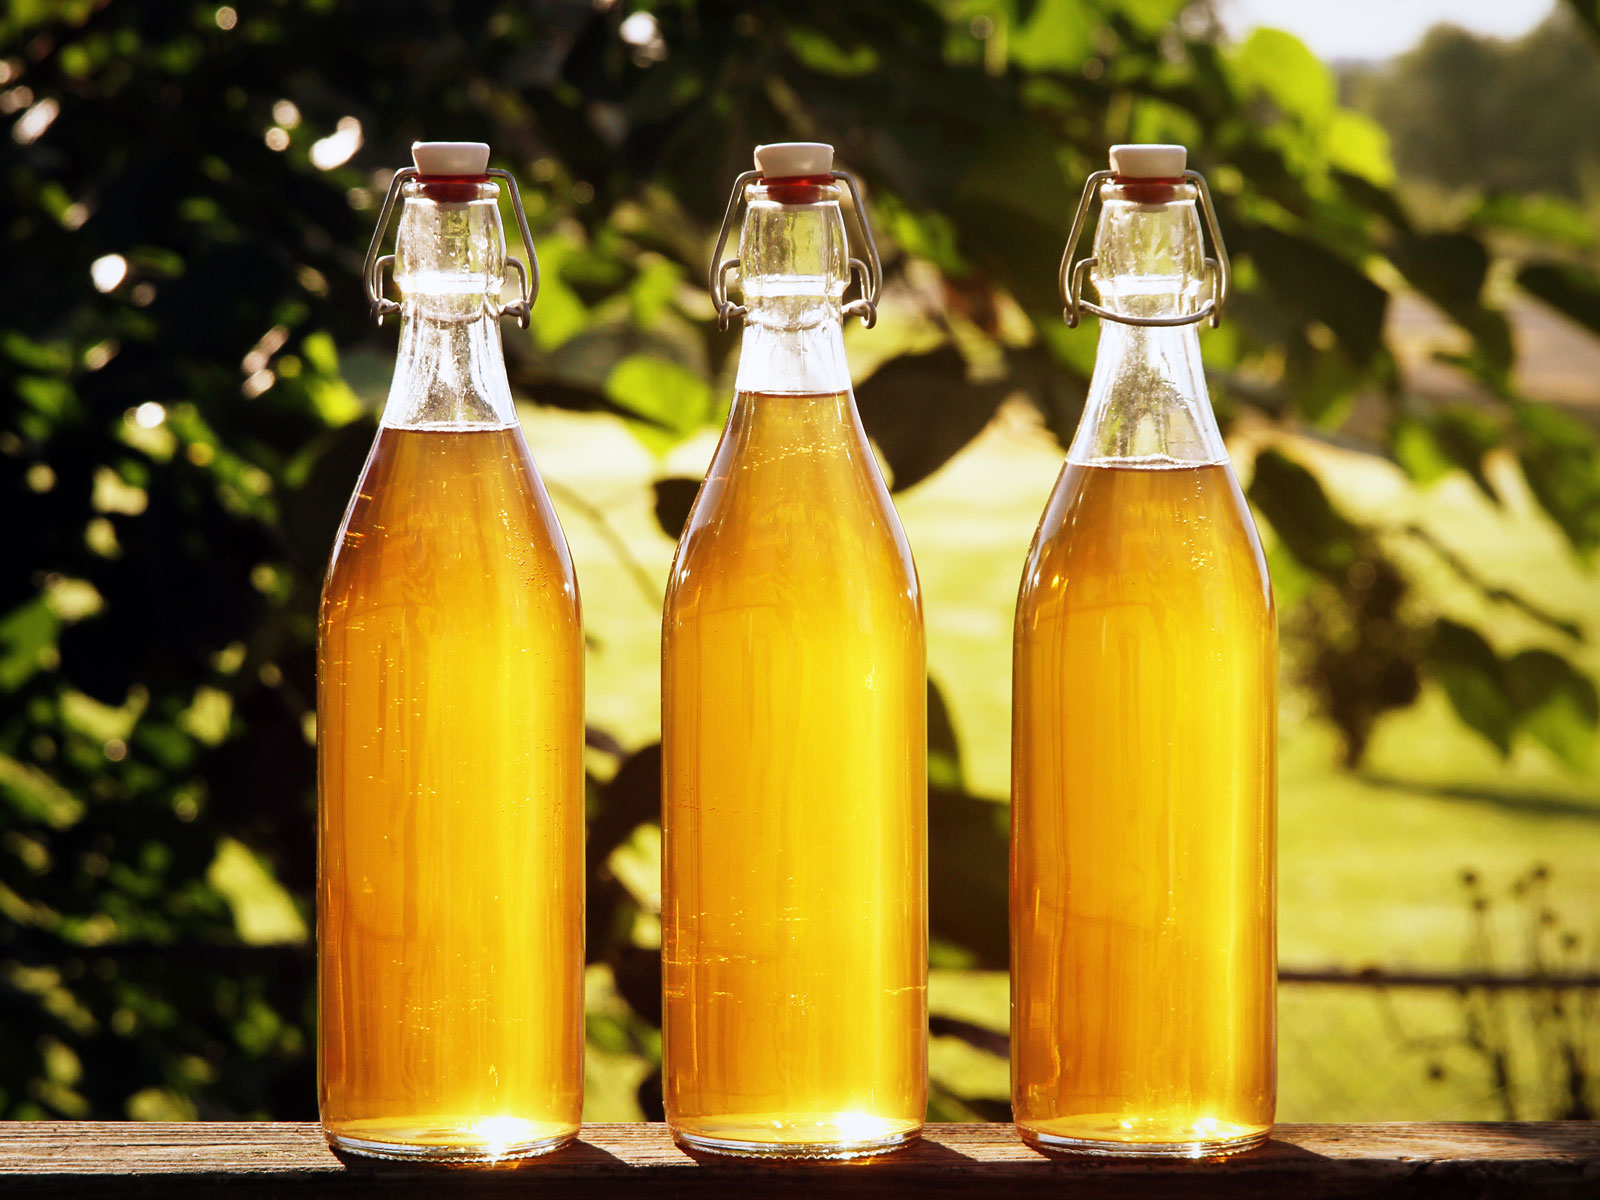 New York Adds Mead to Its Ongoing Craft Beverage Booster Program